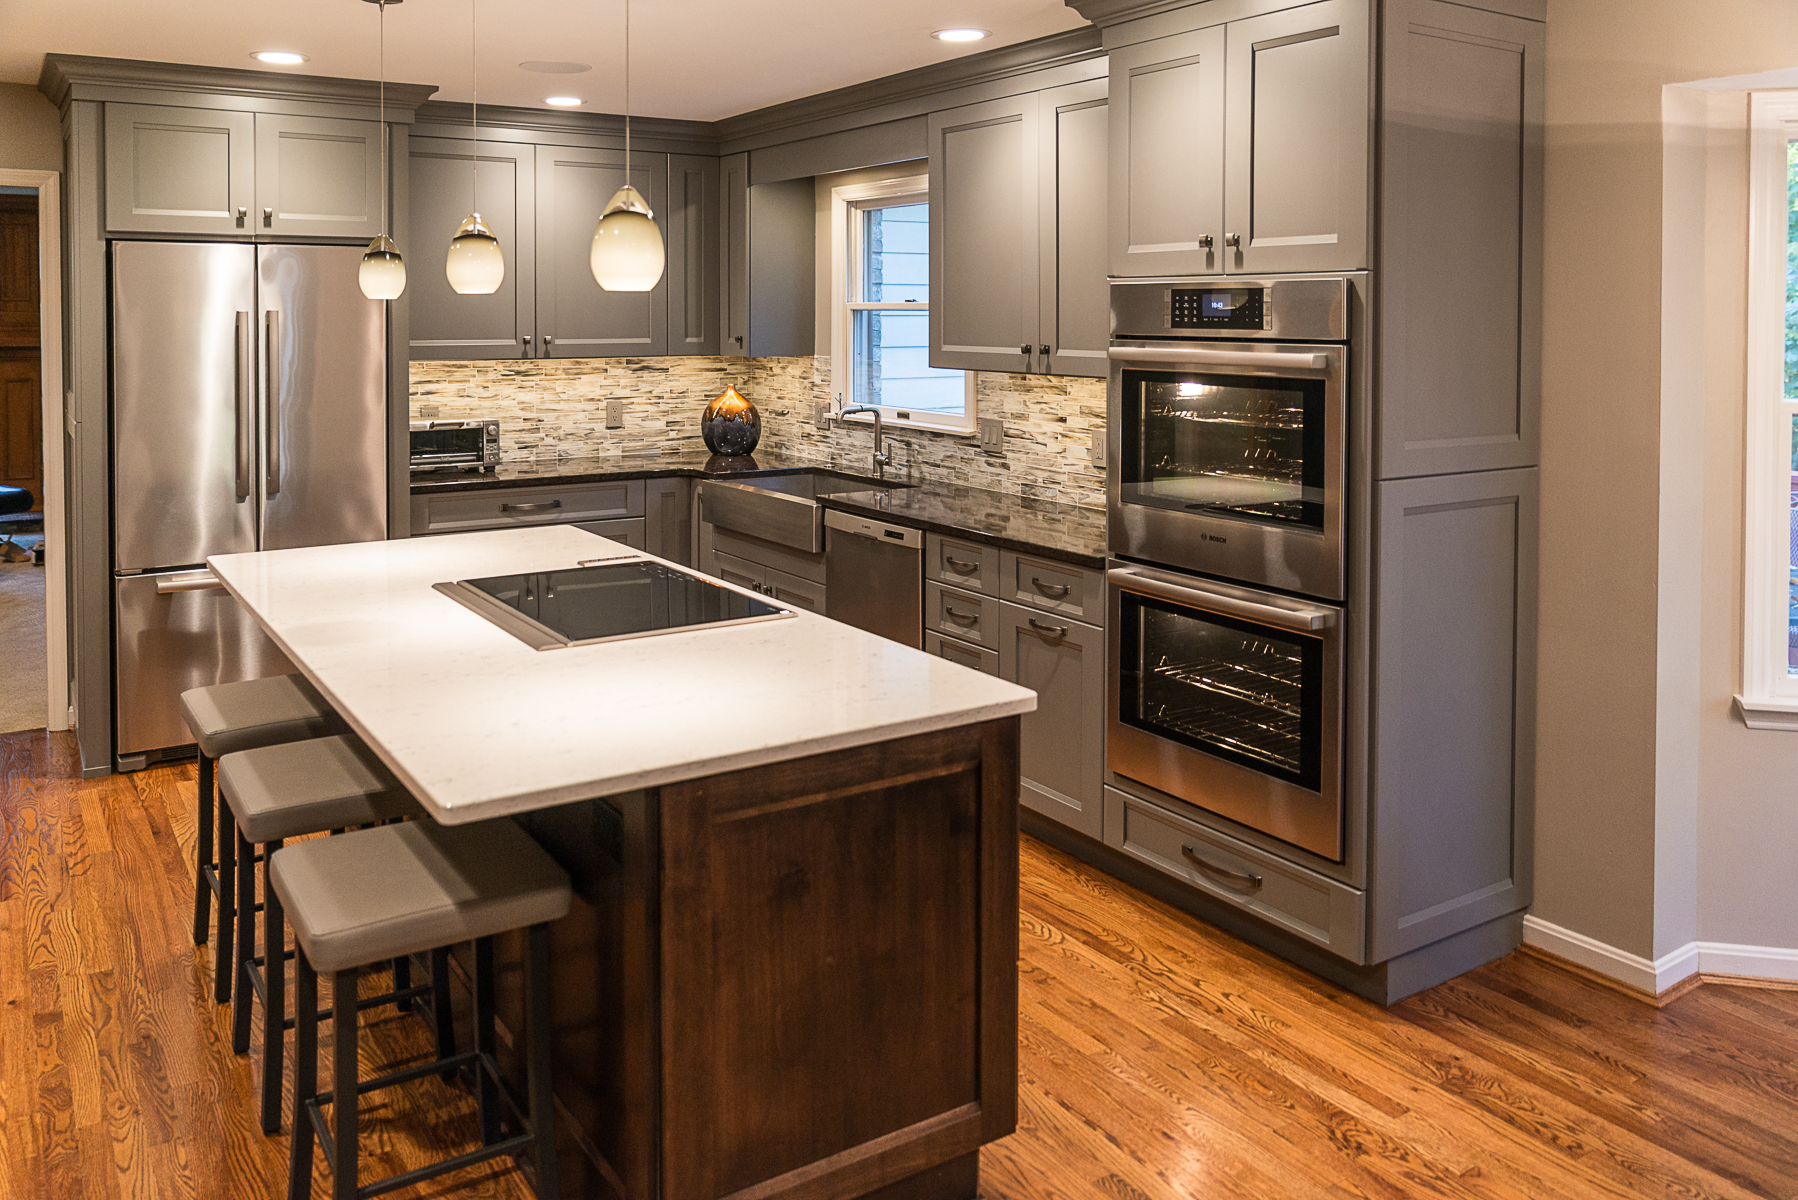 cincinnati remodeling contractor does everything from kitchens to bathrooms to outdoor living areas kitchen remodel cincinnati Cincinnati Remodeling Contractor Does Everything from Kitchens to Bathrooms to Outdoor Living Areas November 19